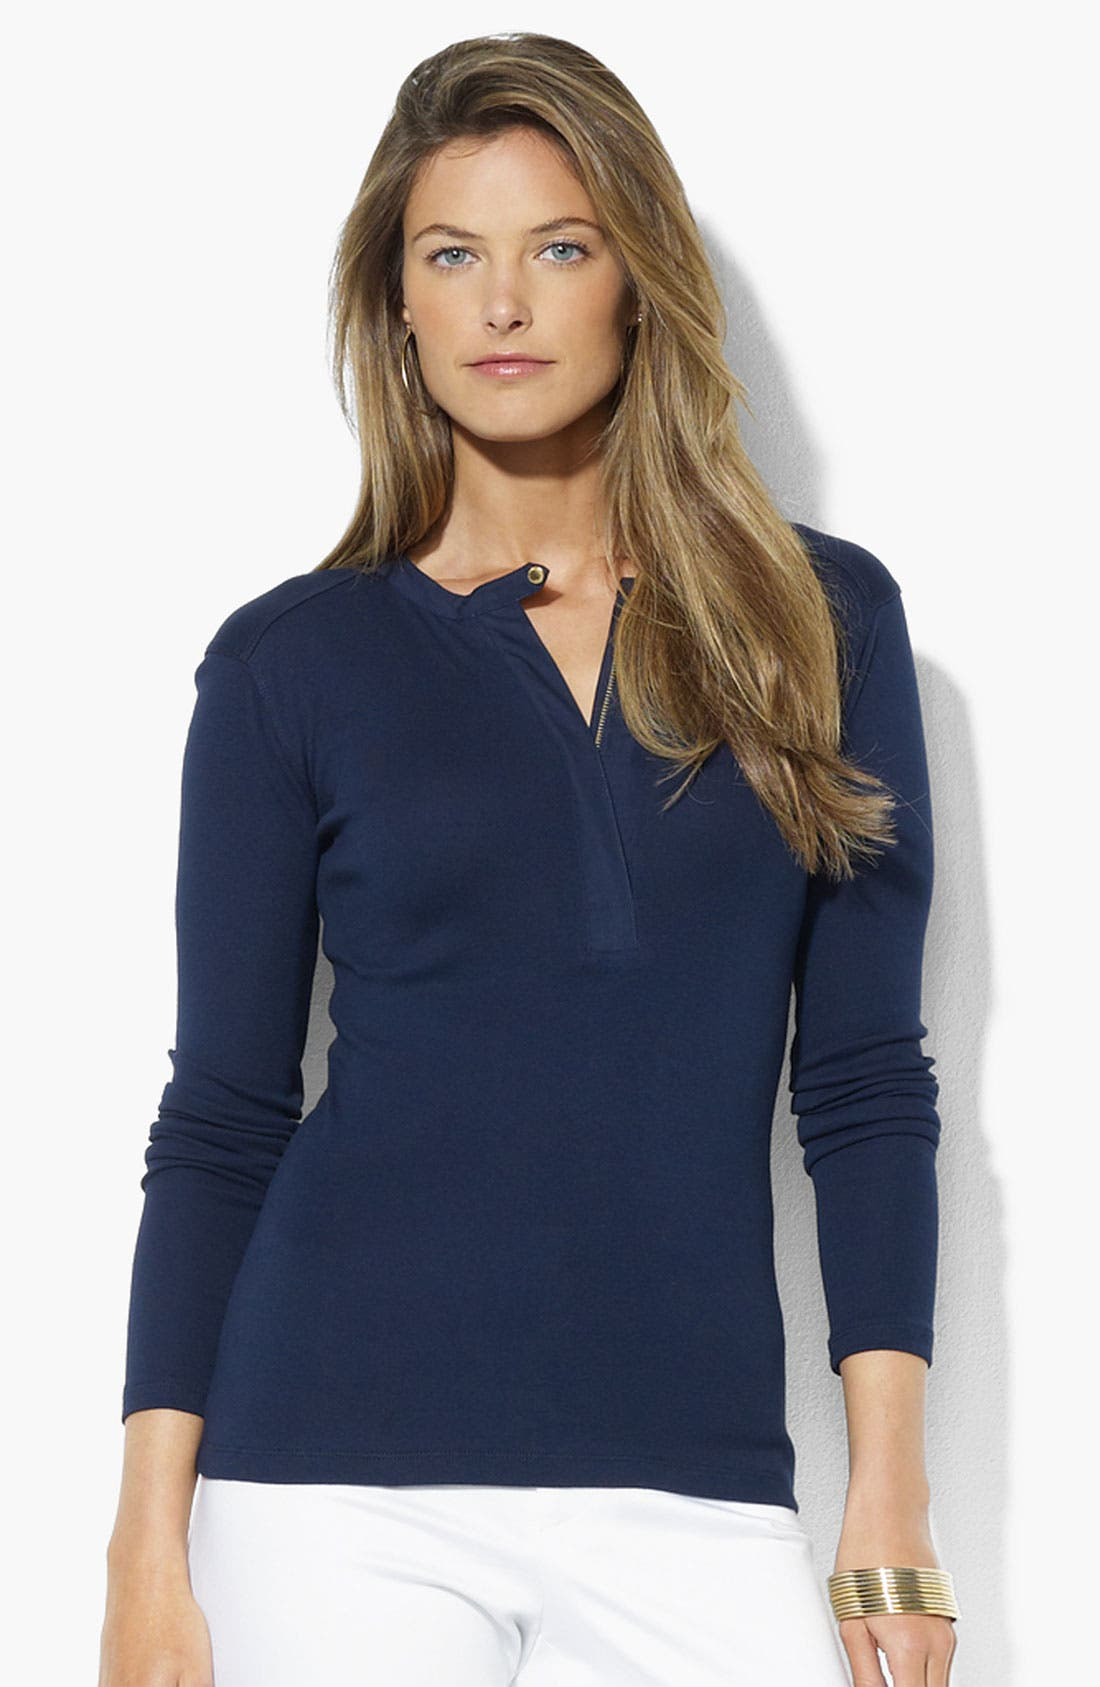 Alternate Image 1 Selected - Lauren Ralph Lauren Half Zip Crewneck Top (Petite) (Online Exclusive)